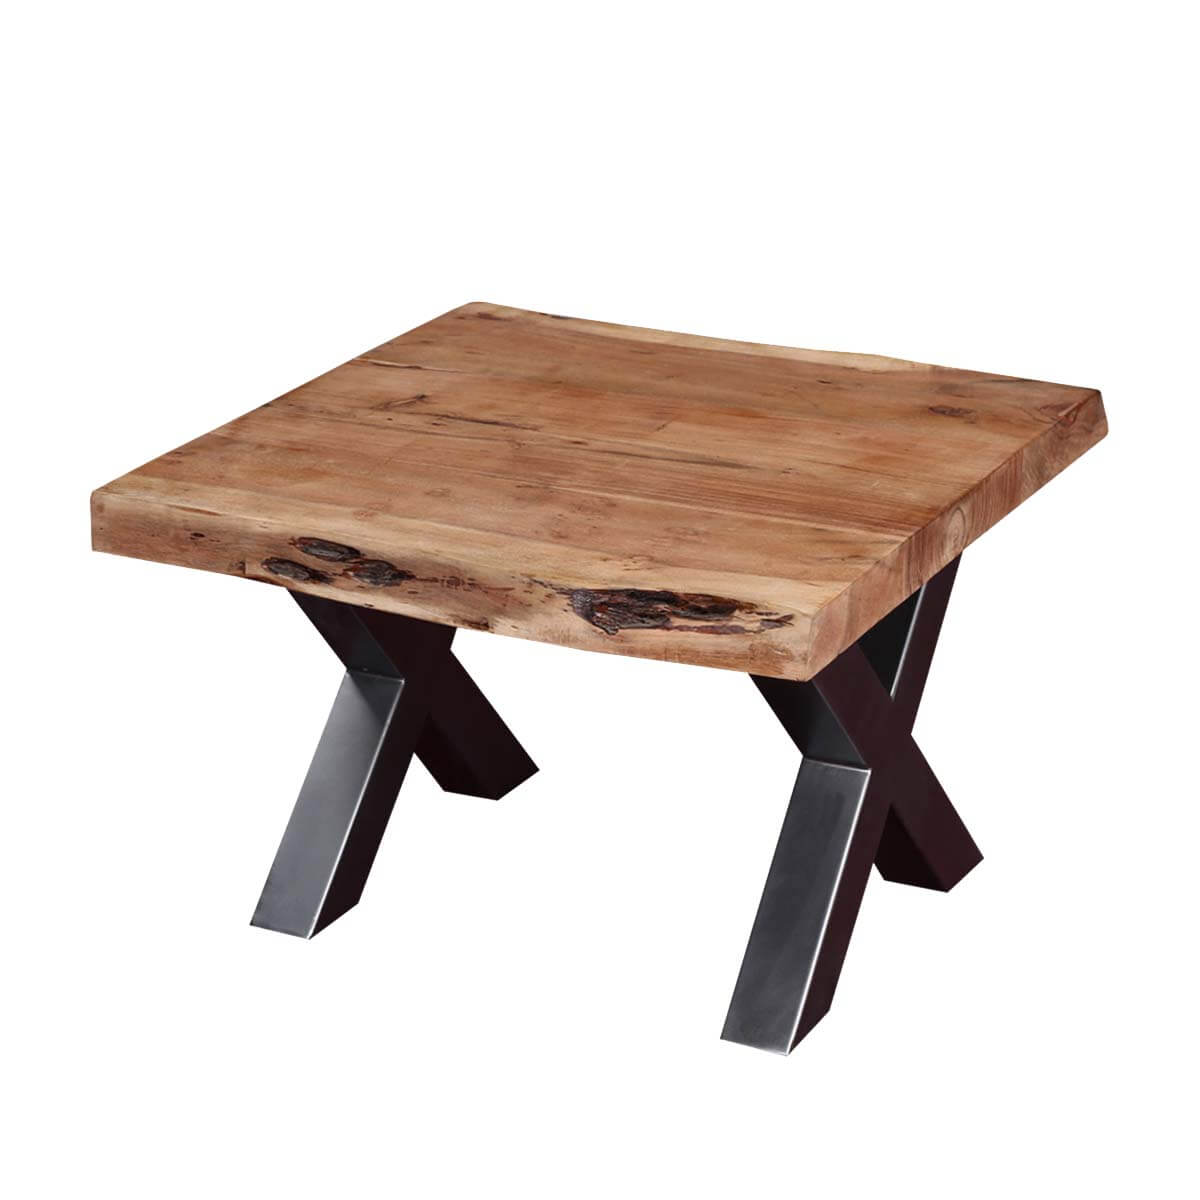 Picnic Style Acacia Wood U0026 Iron 23u201d Square Live Edge End Table